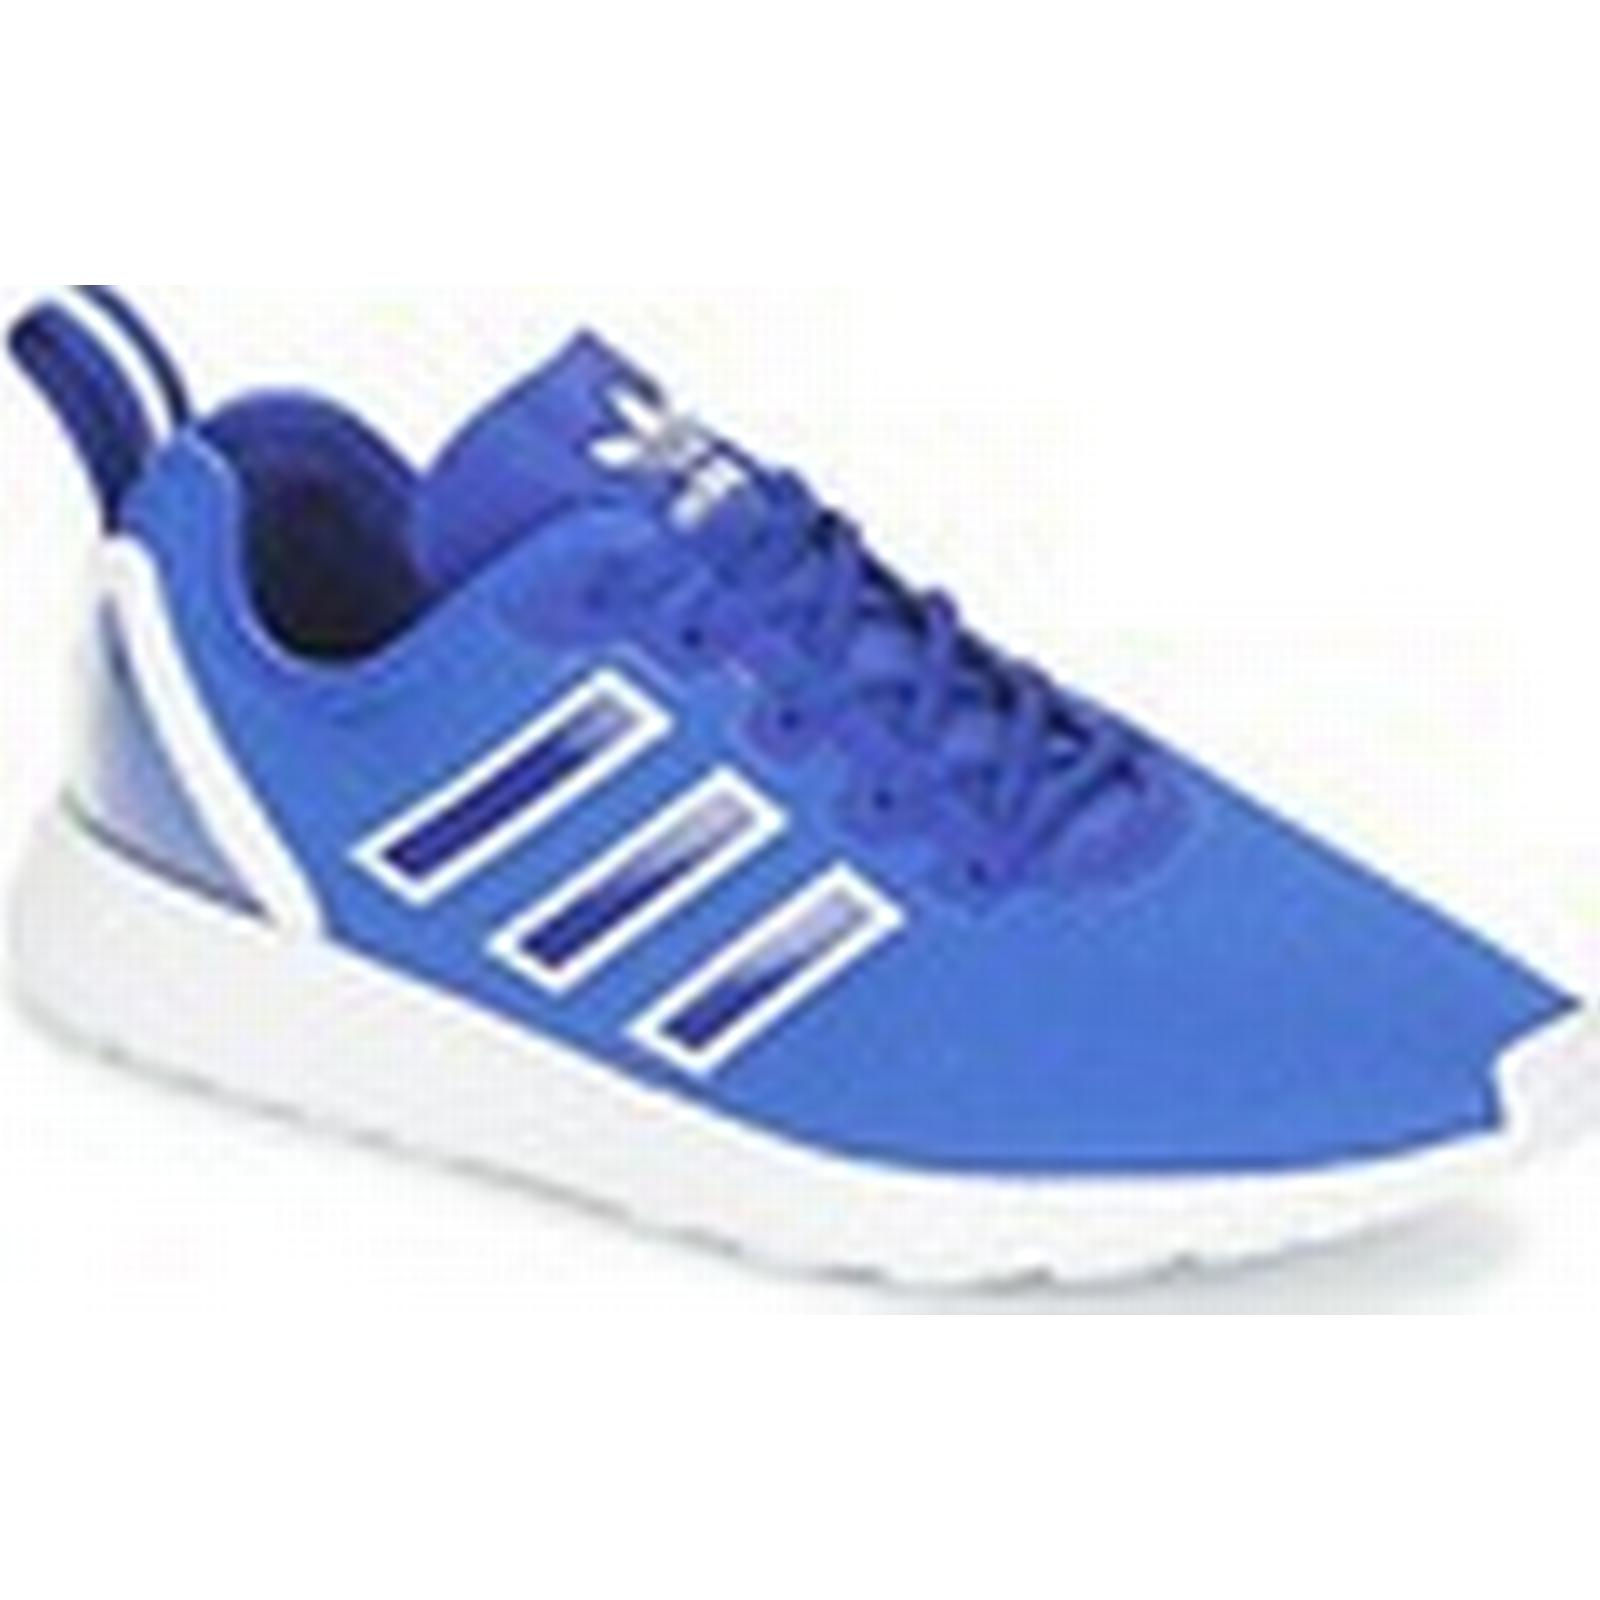 Adidas  ZX ZX  FLUX RACER  men's Shoes (Trainers) in Blue 362560